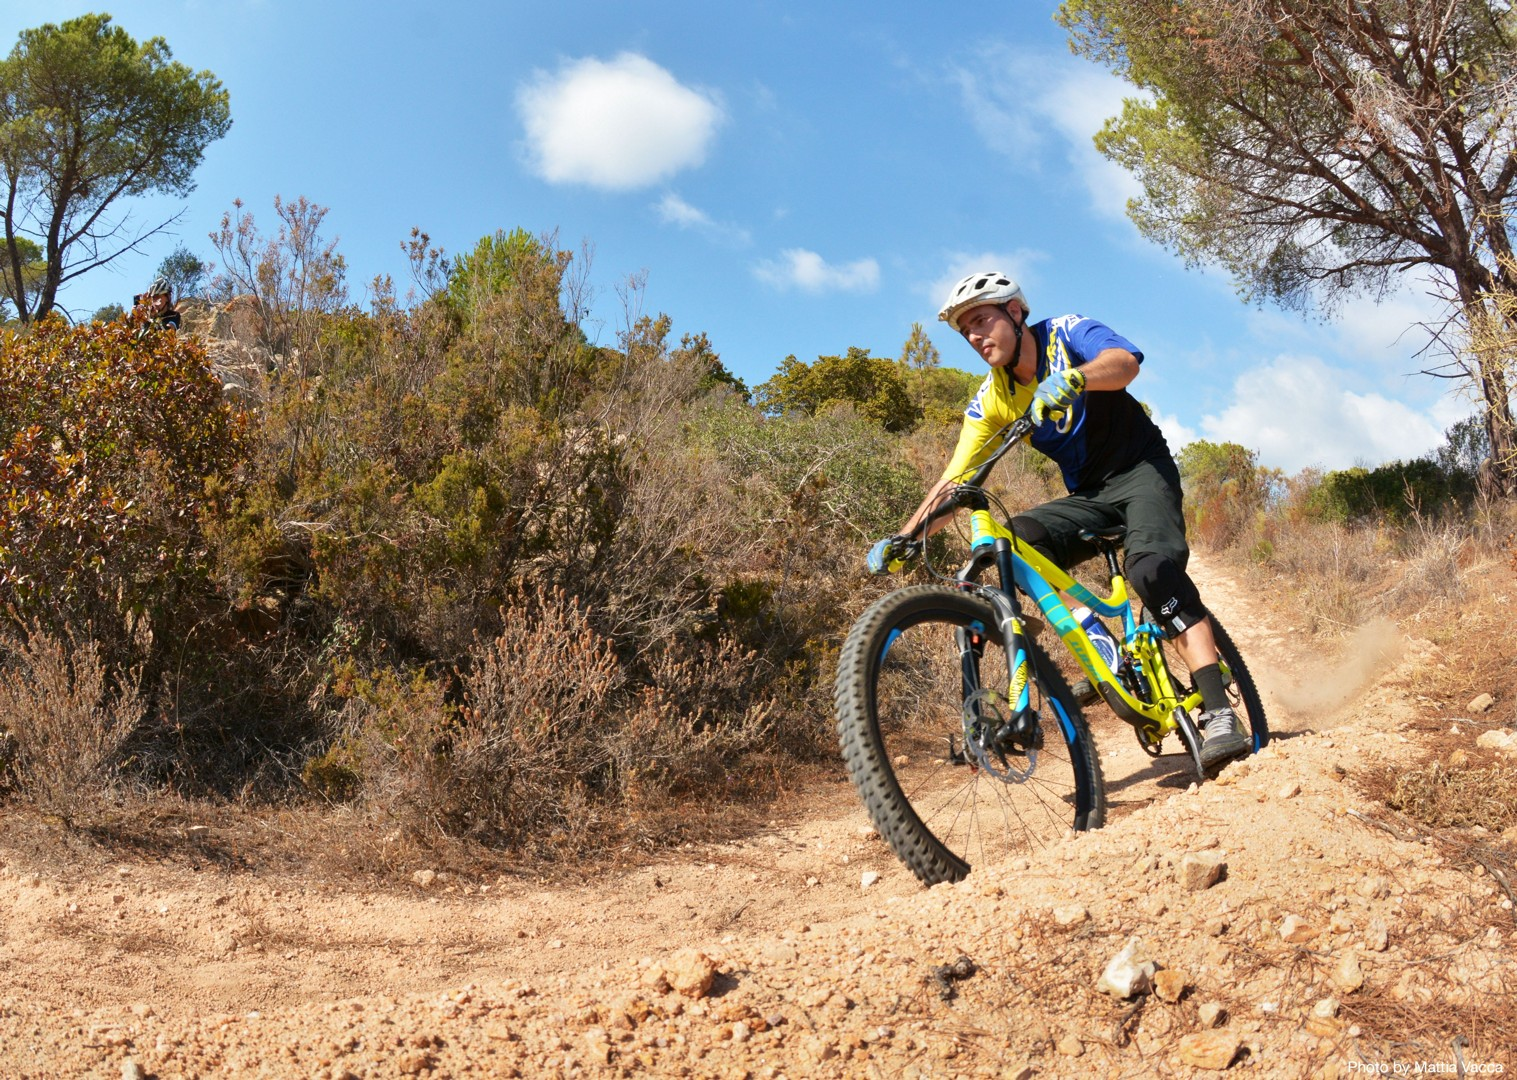 trails-sardinian-enduro-italy-guided-mountain-bike-holiday.jpg - Sardinia - Sardinian Enduro - Guided Mountain Bike Holiday - Italia Mountain Biking